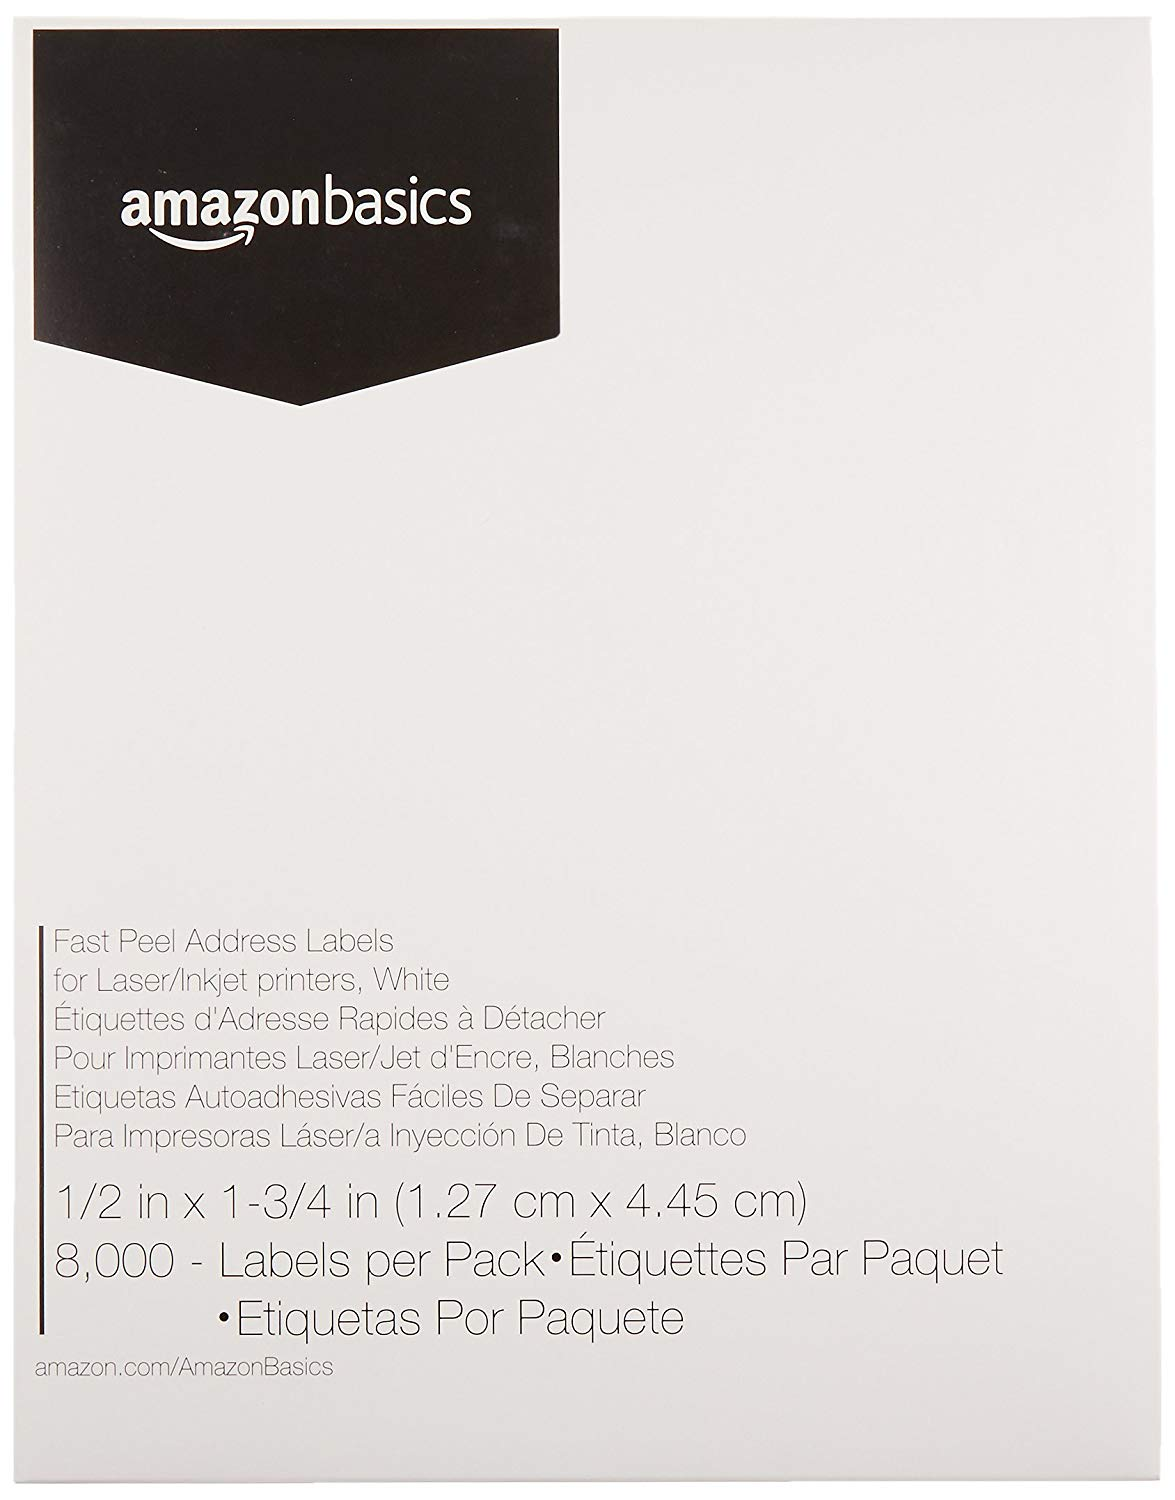 8 000 count amazonbasics fast peel address labels for laser inkjet